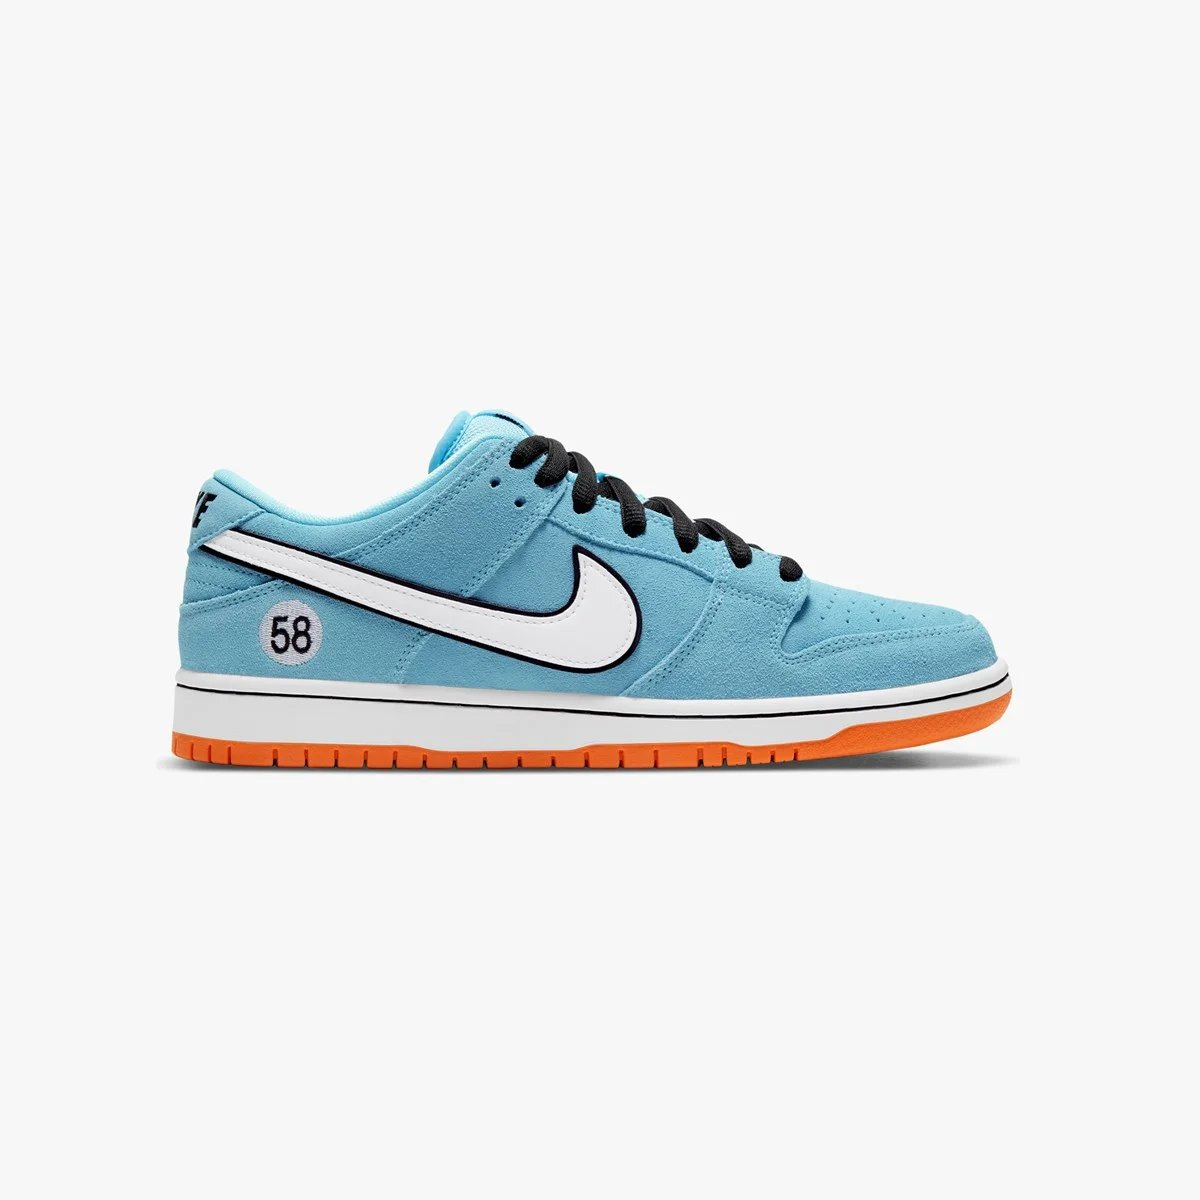 SNS online raffle live for the Nike SB Dunk Low Pro